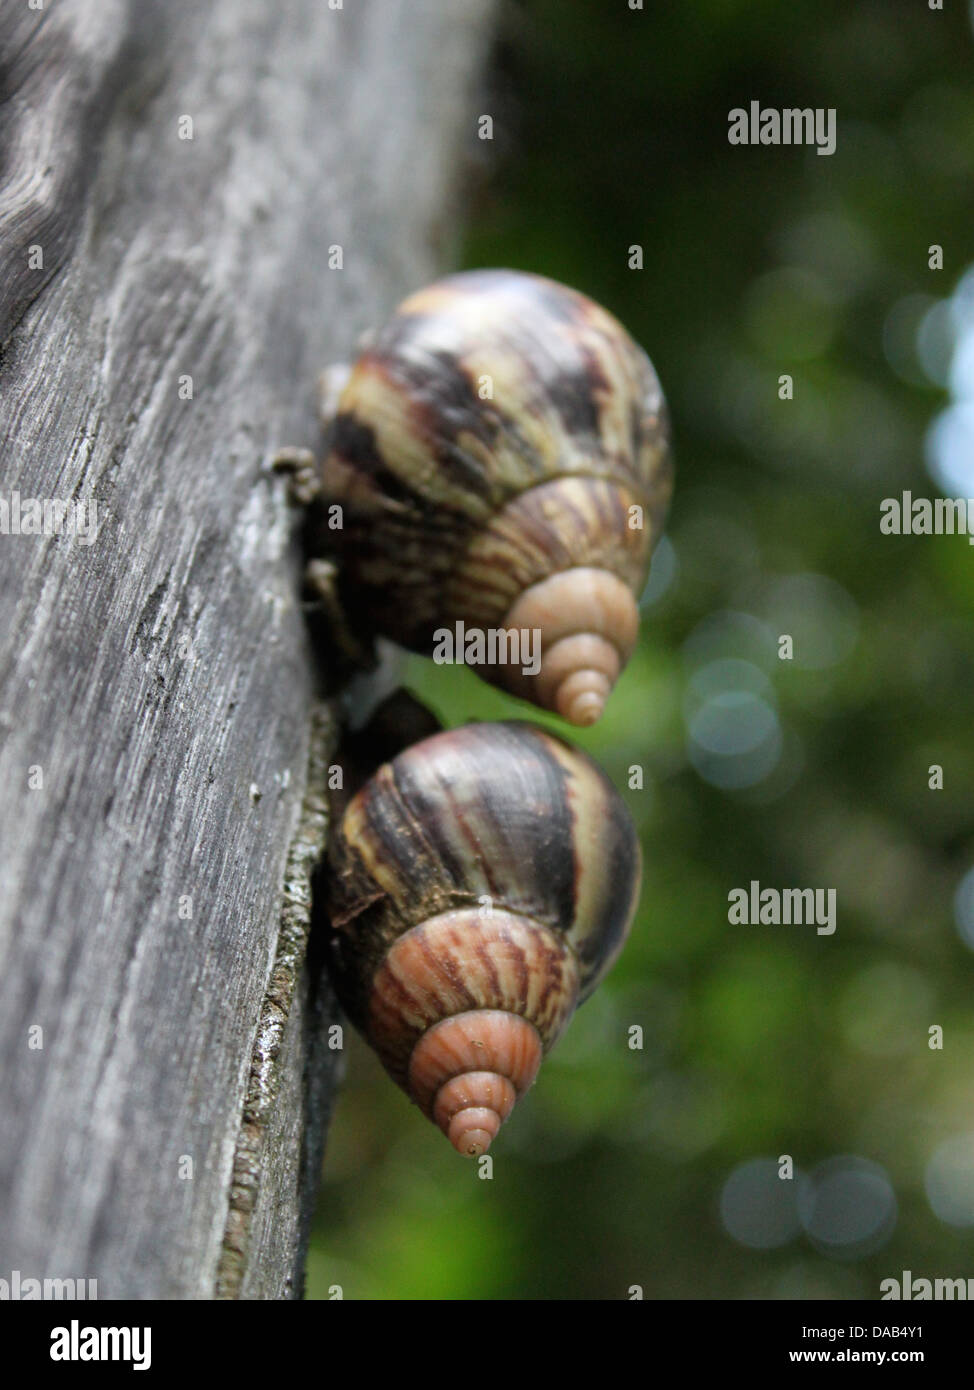 two snails on a wooden power pylon - Stock Image